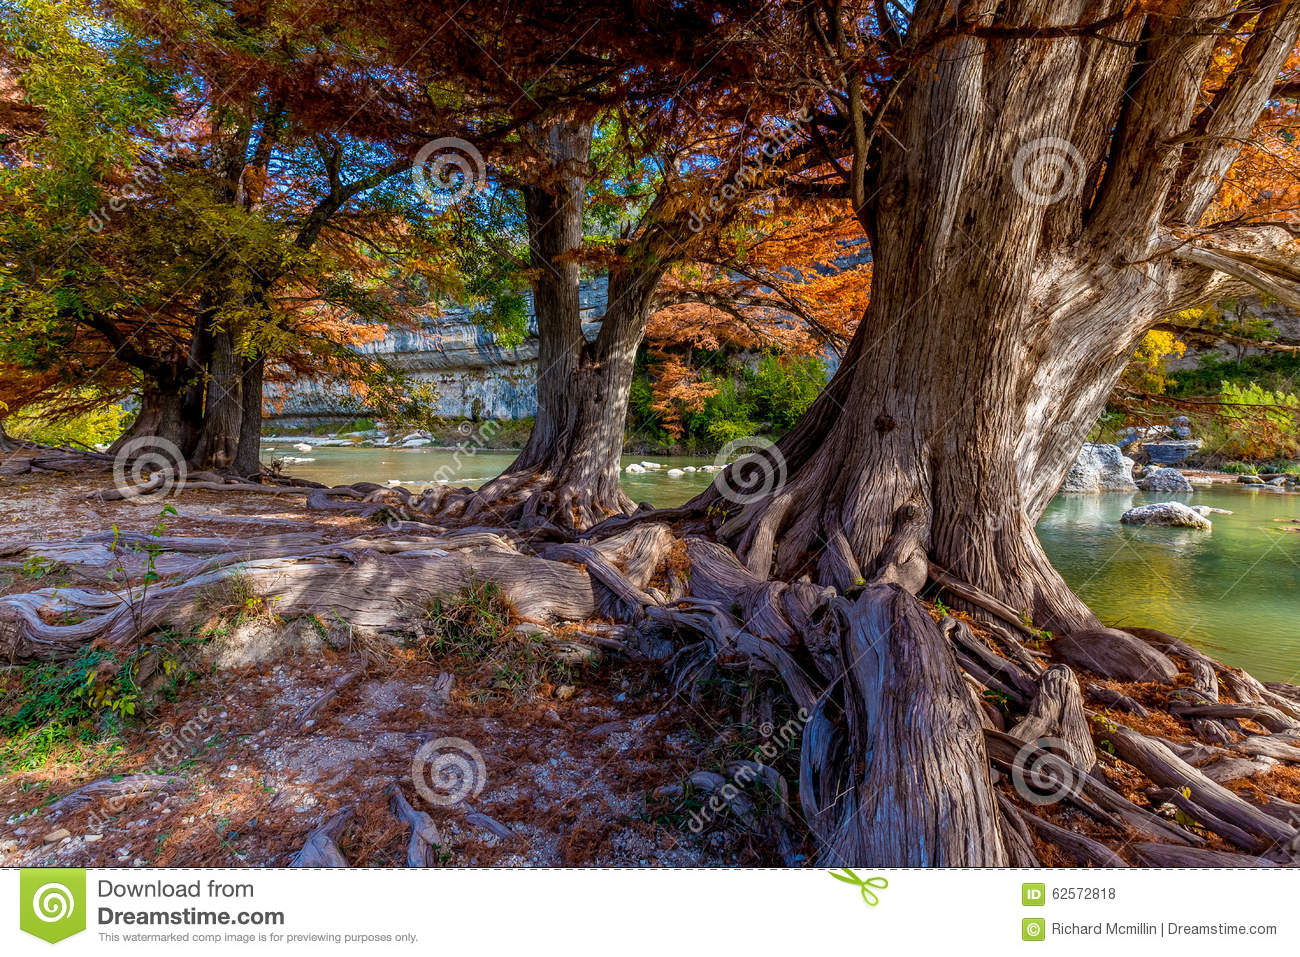 Fall Foliage on Ancient Cypress Trees at Guadalupe State Park, Texas